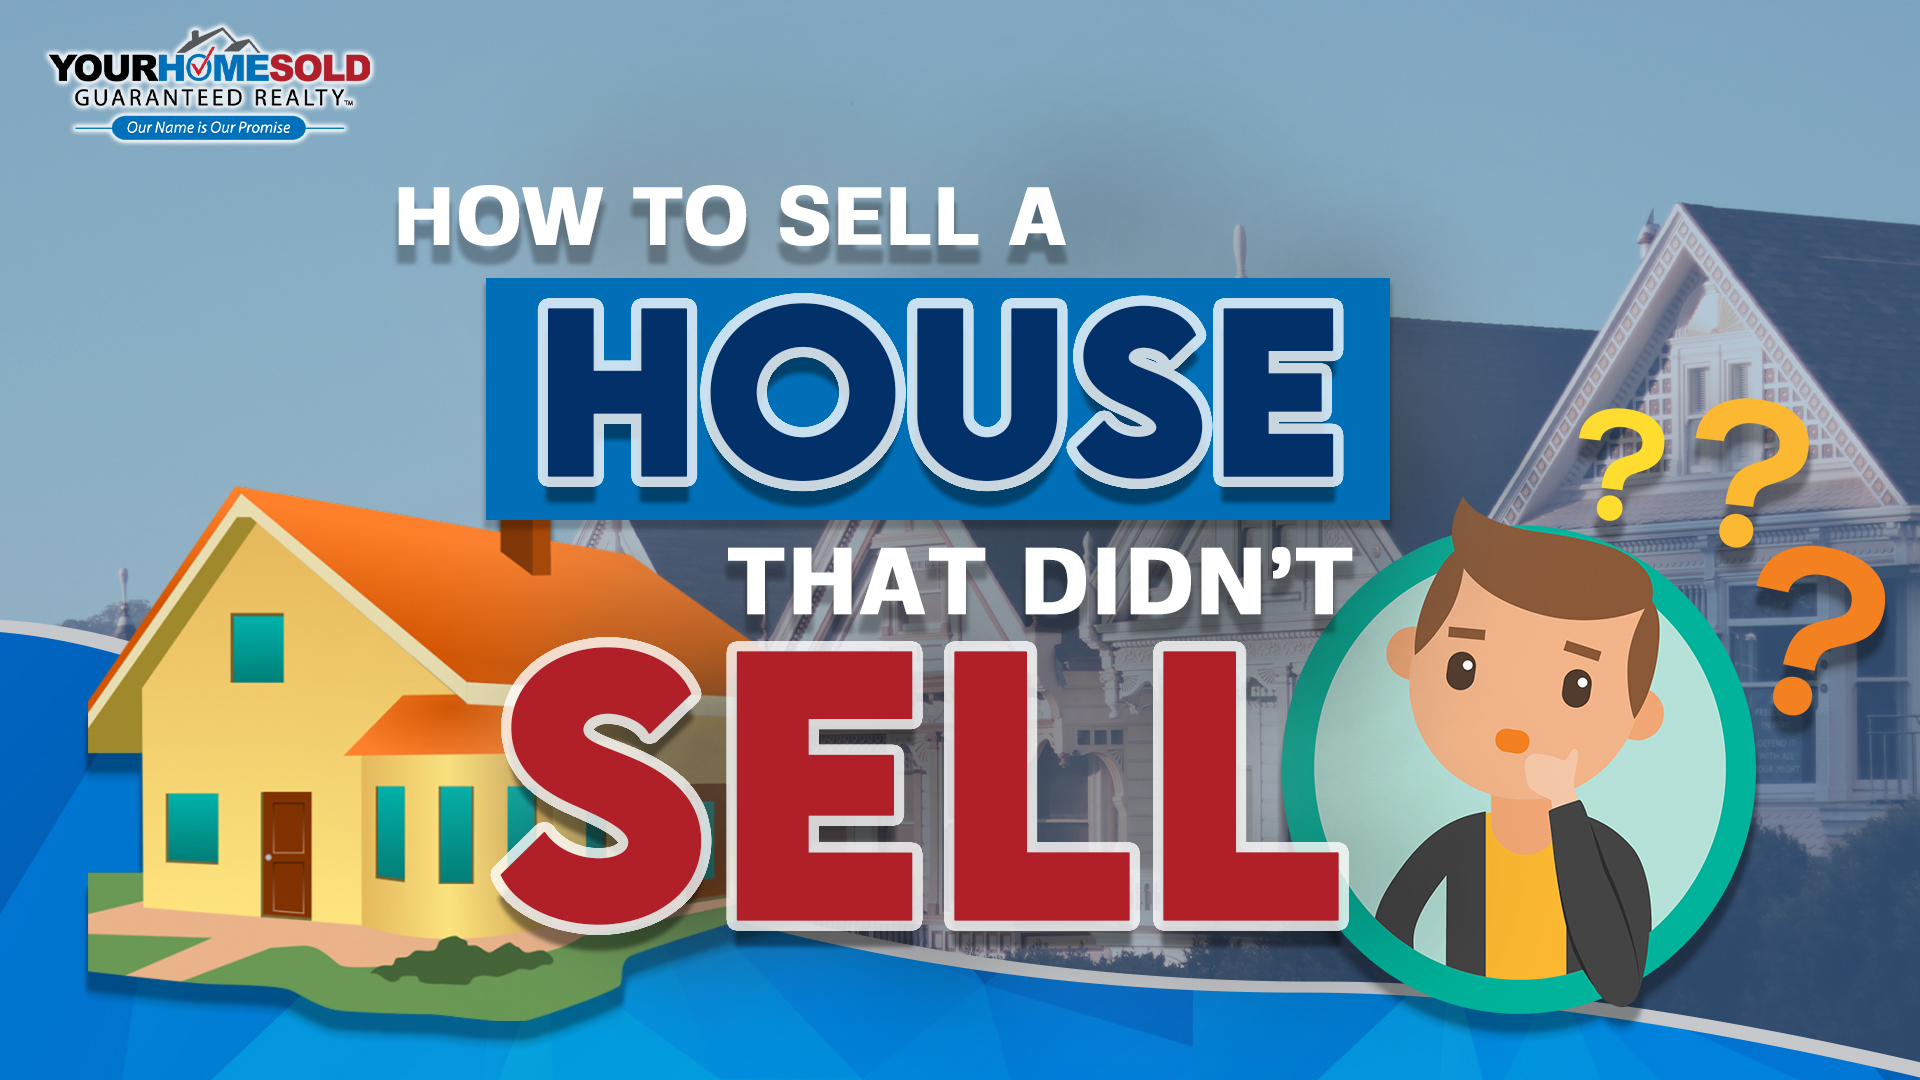 how to sell a house didnt sell.jpg